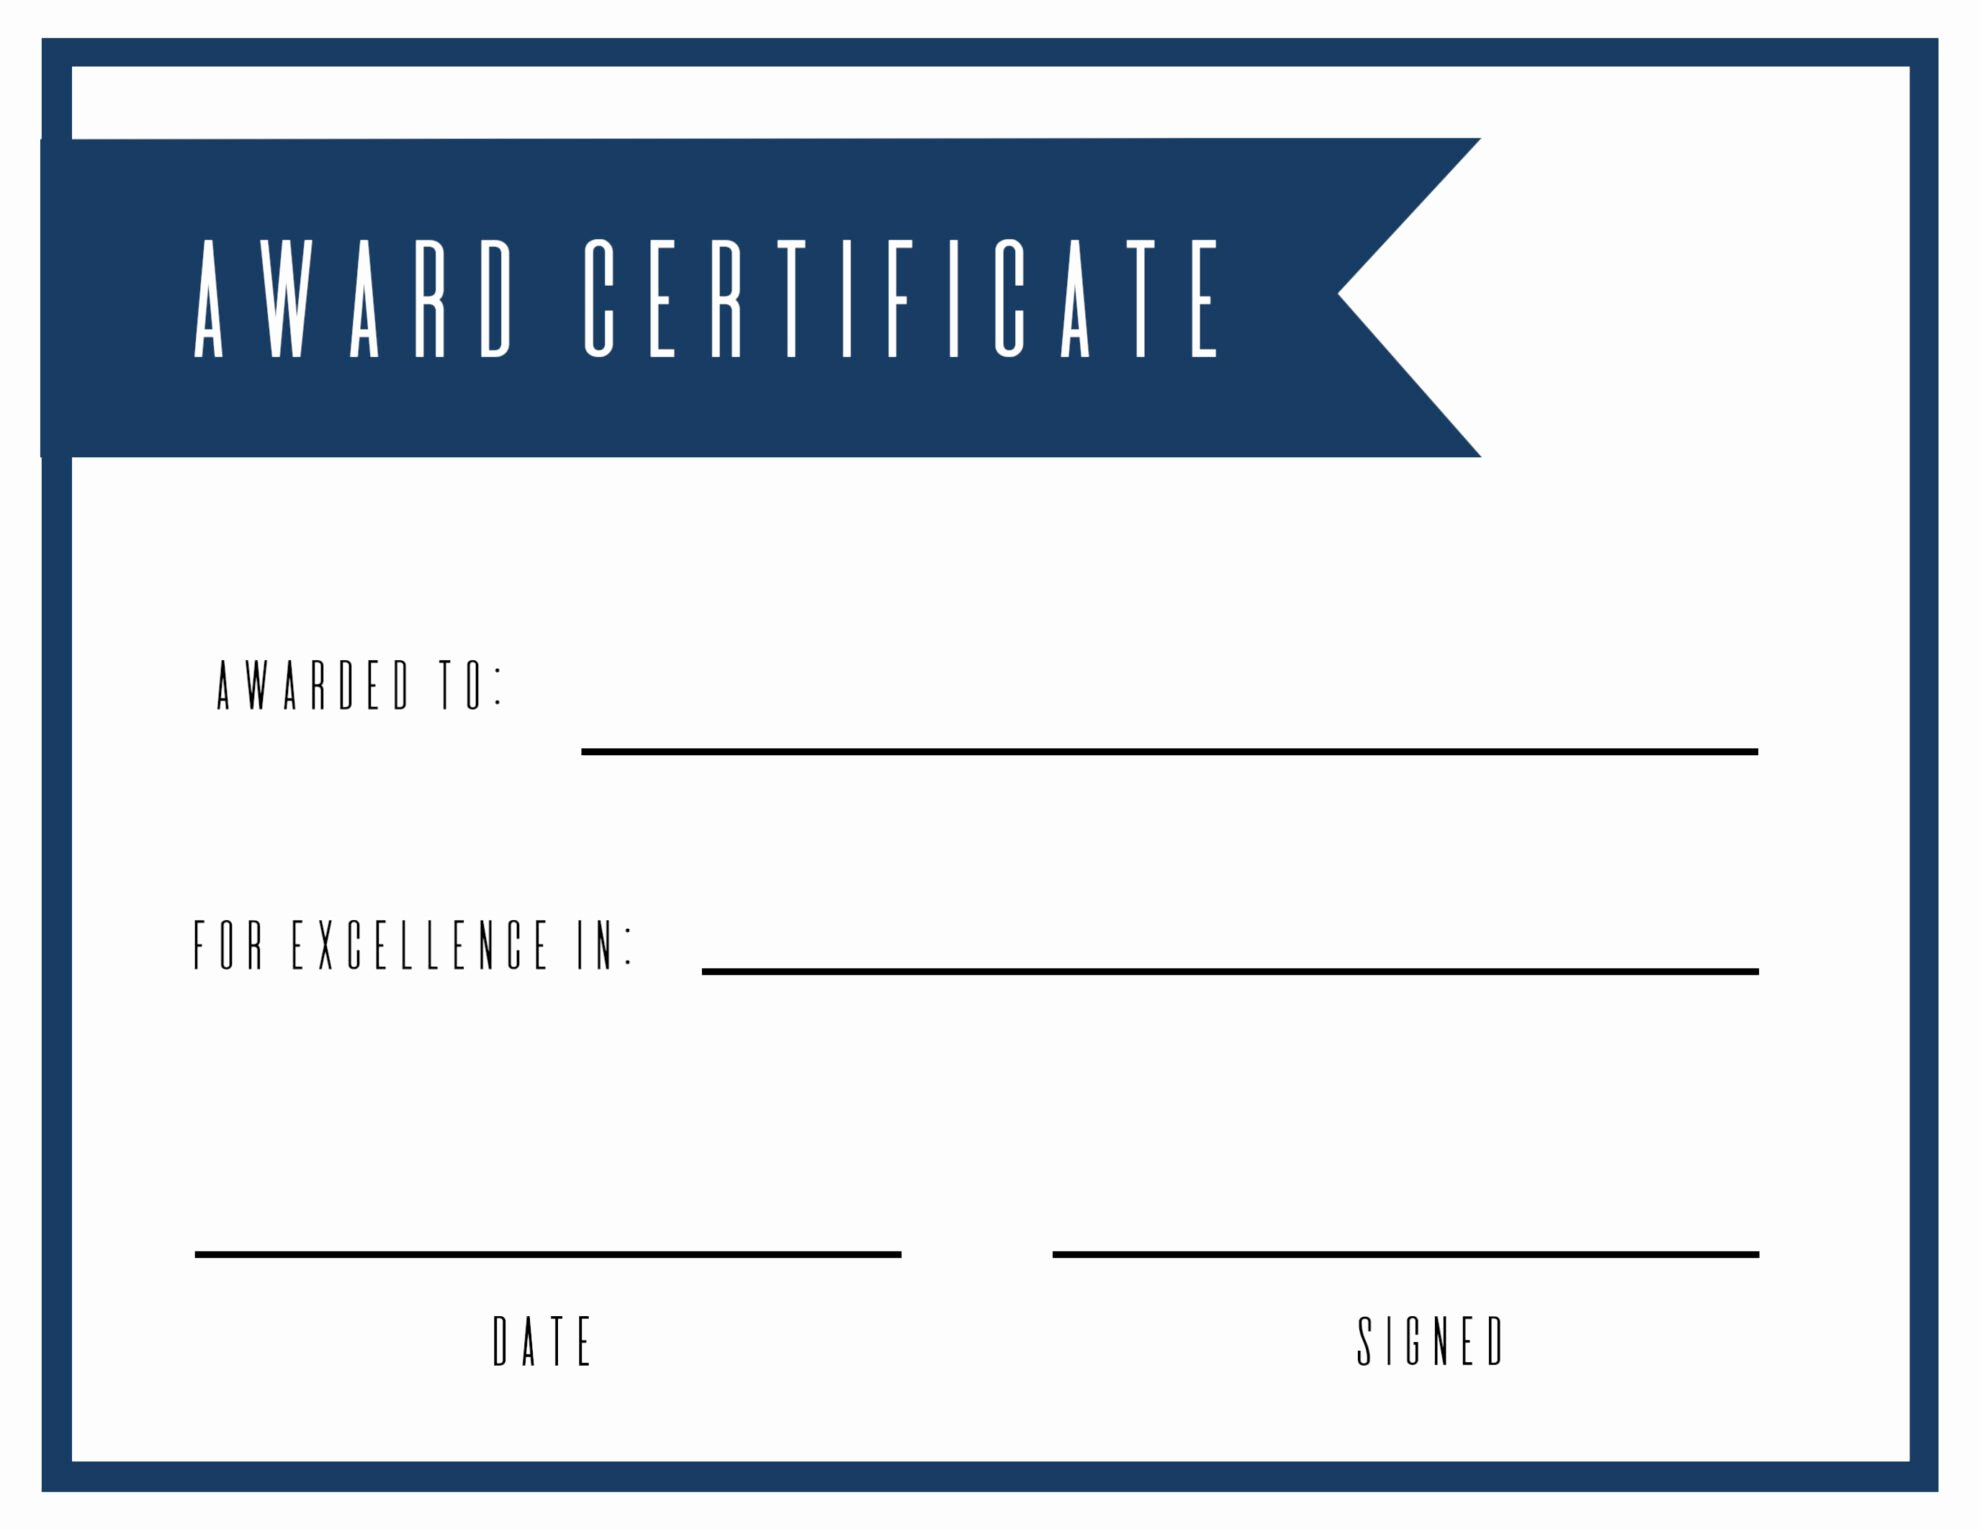 Blank Certificates to Print Luxury Free Printable Award Certificate Template Paper Trail Design